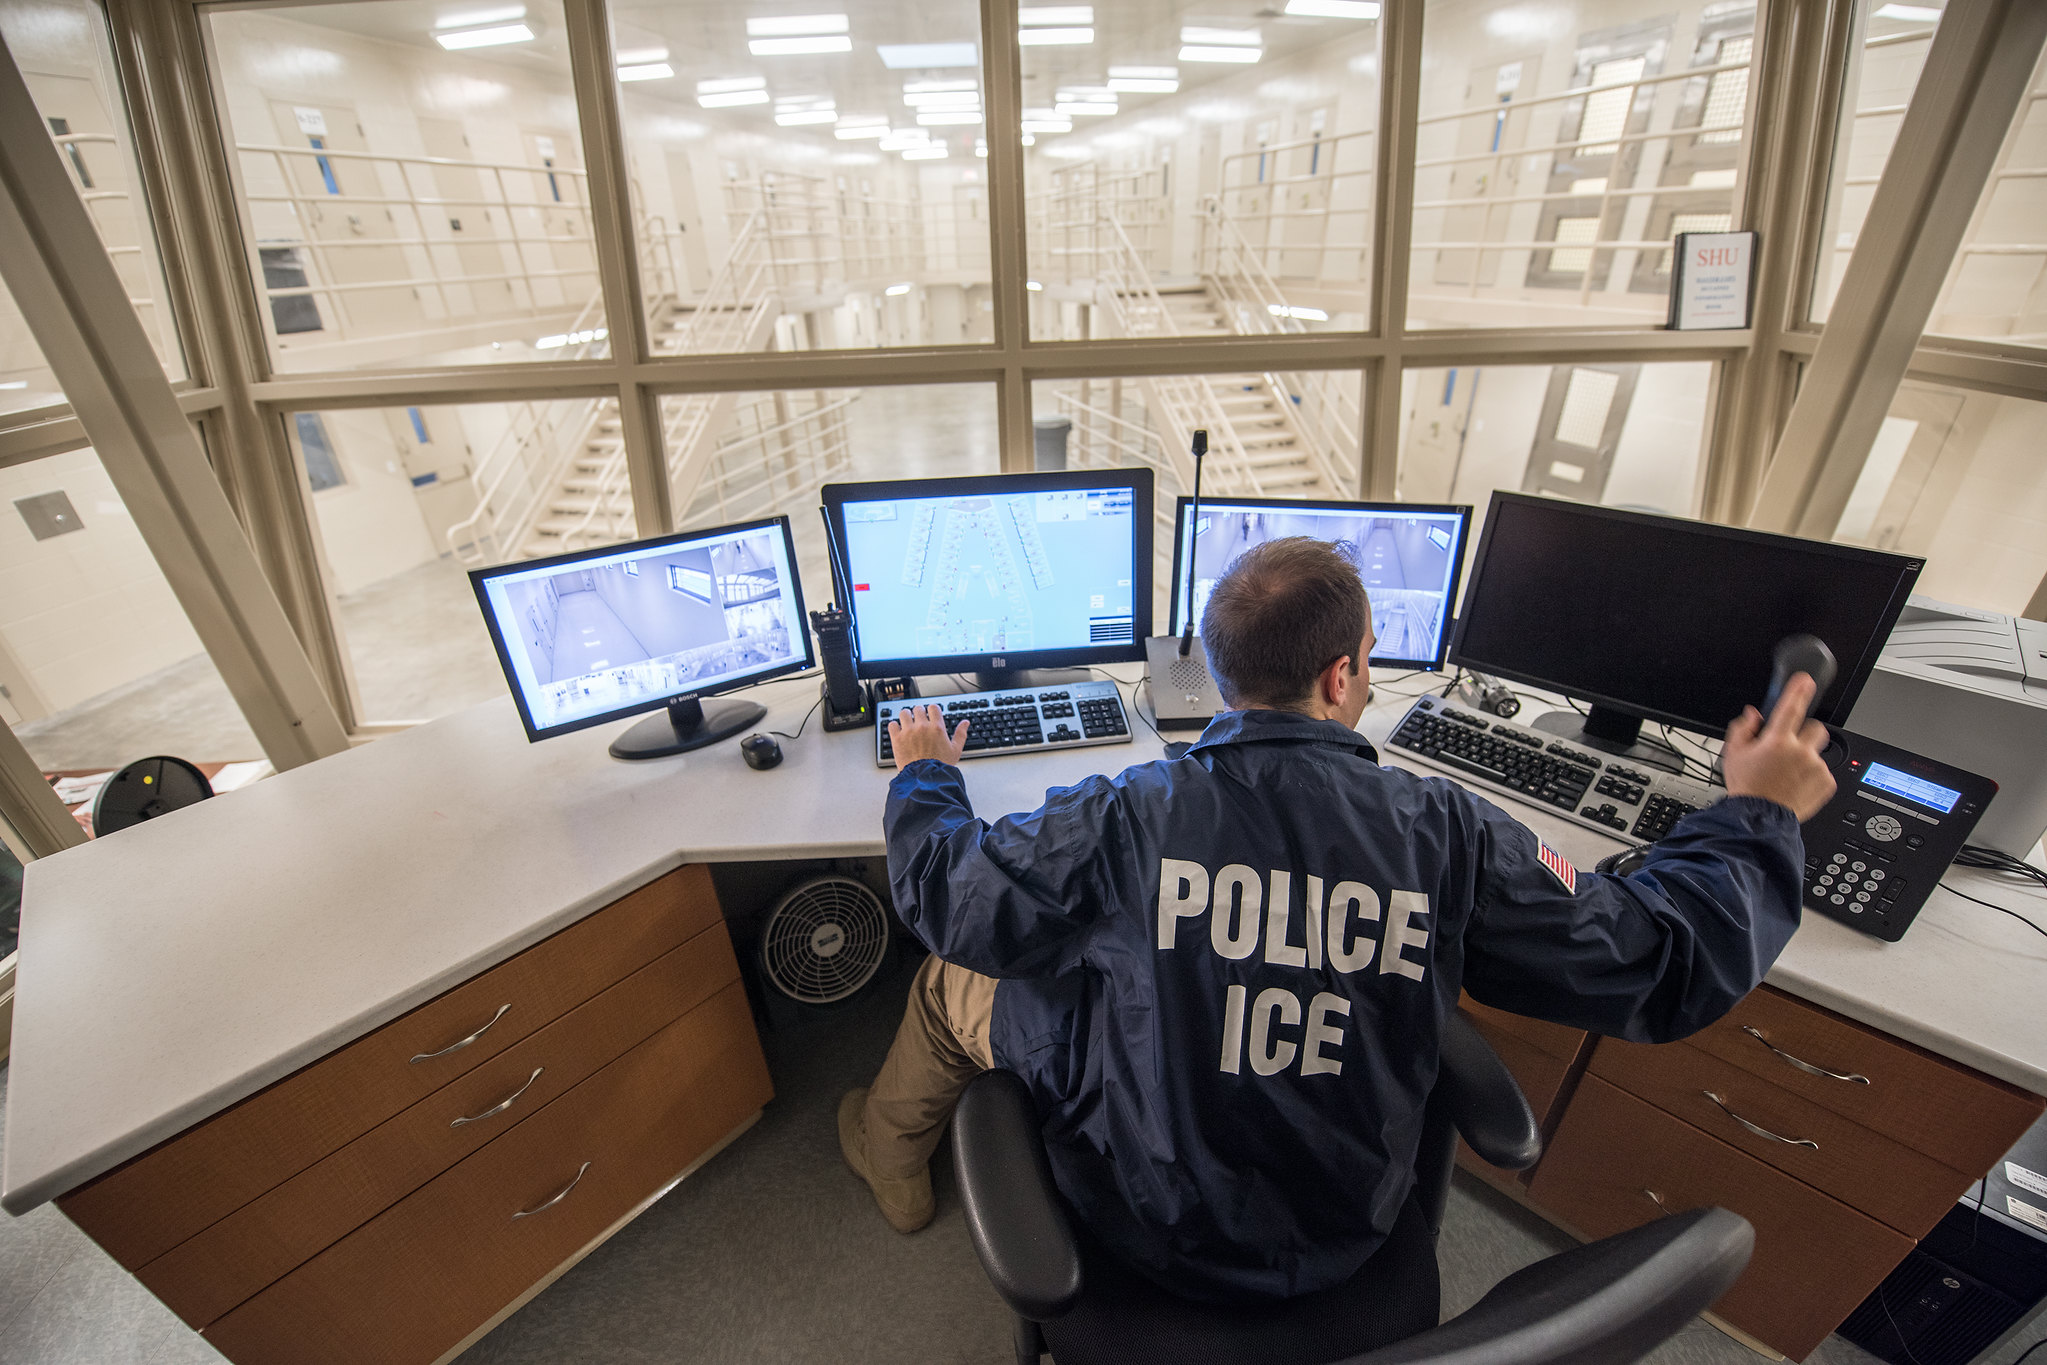 A Man Detained in Batavia is Fighting to Be Deported. ICE Has Cancelled His Flight 13 Times.